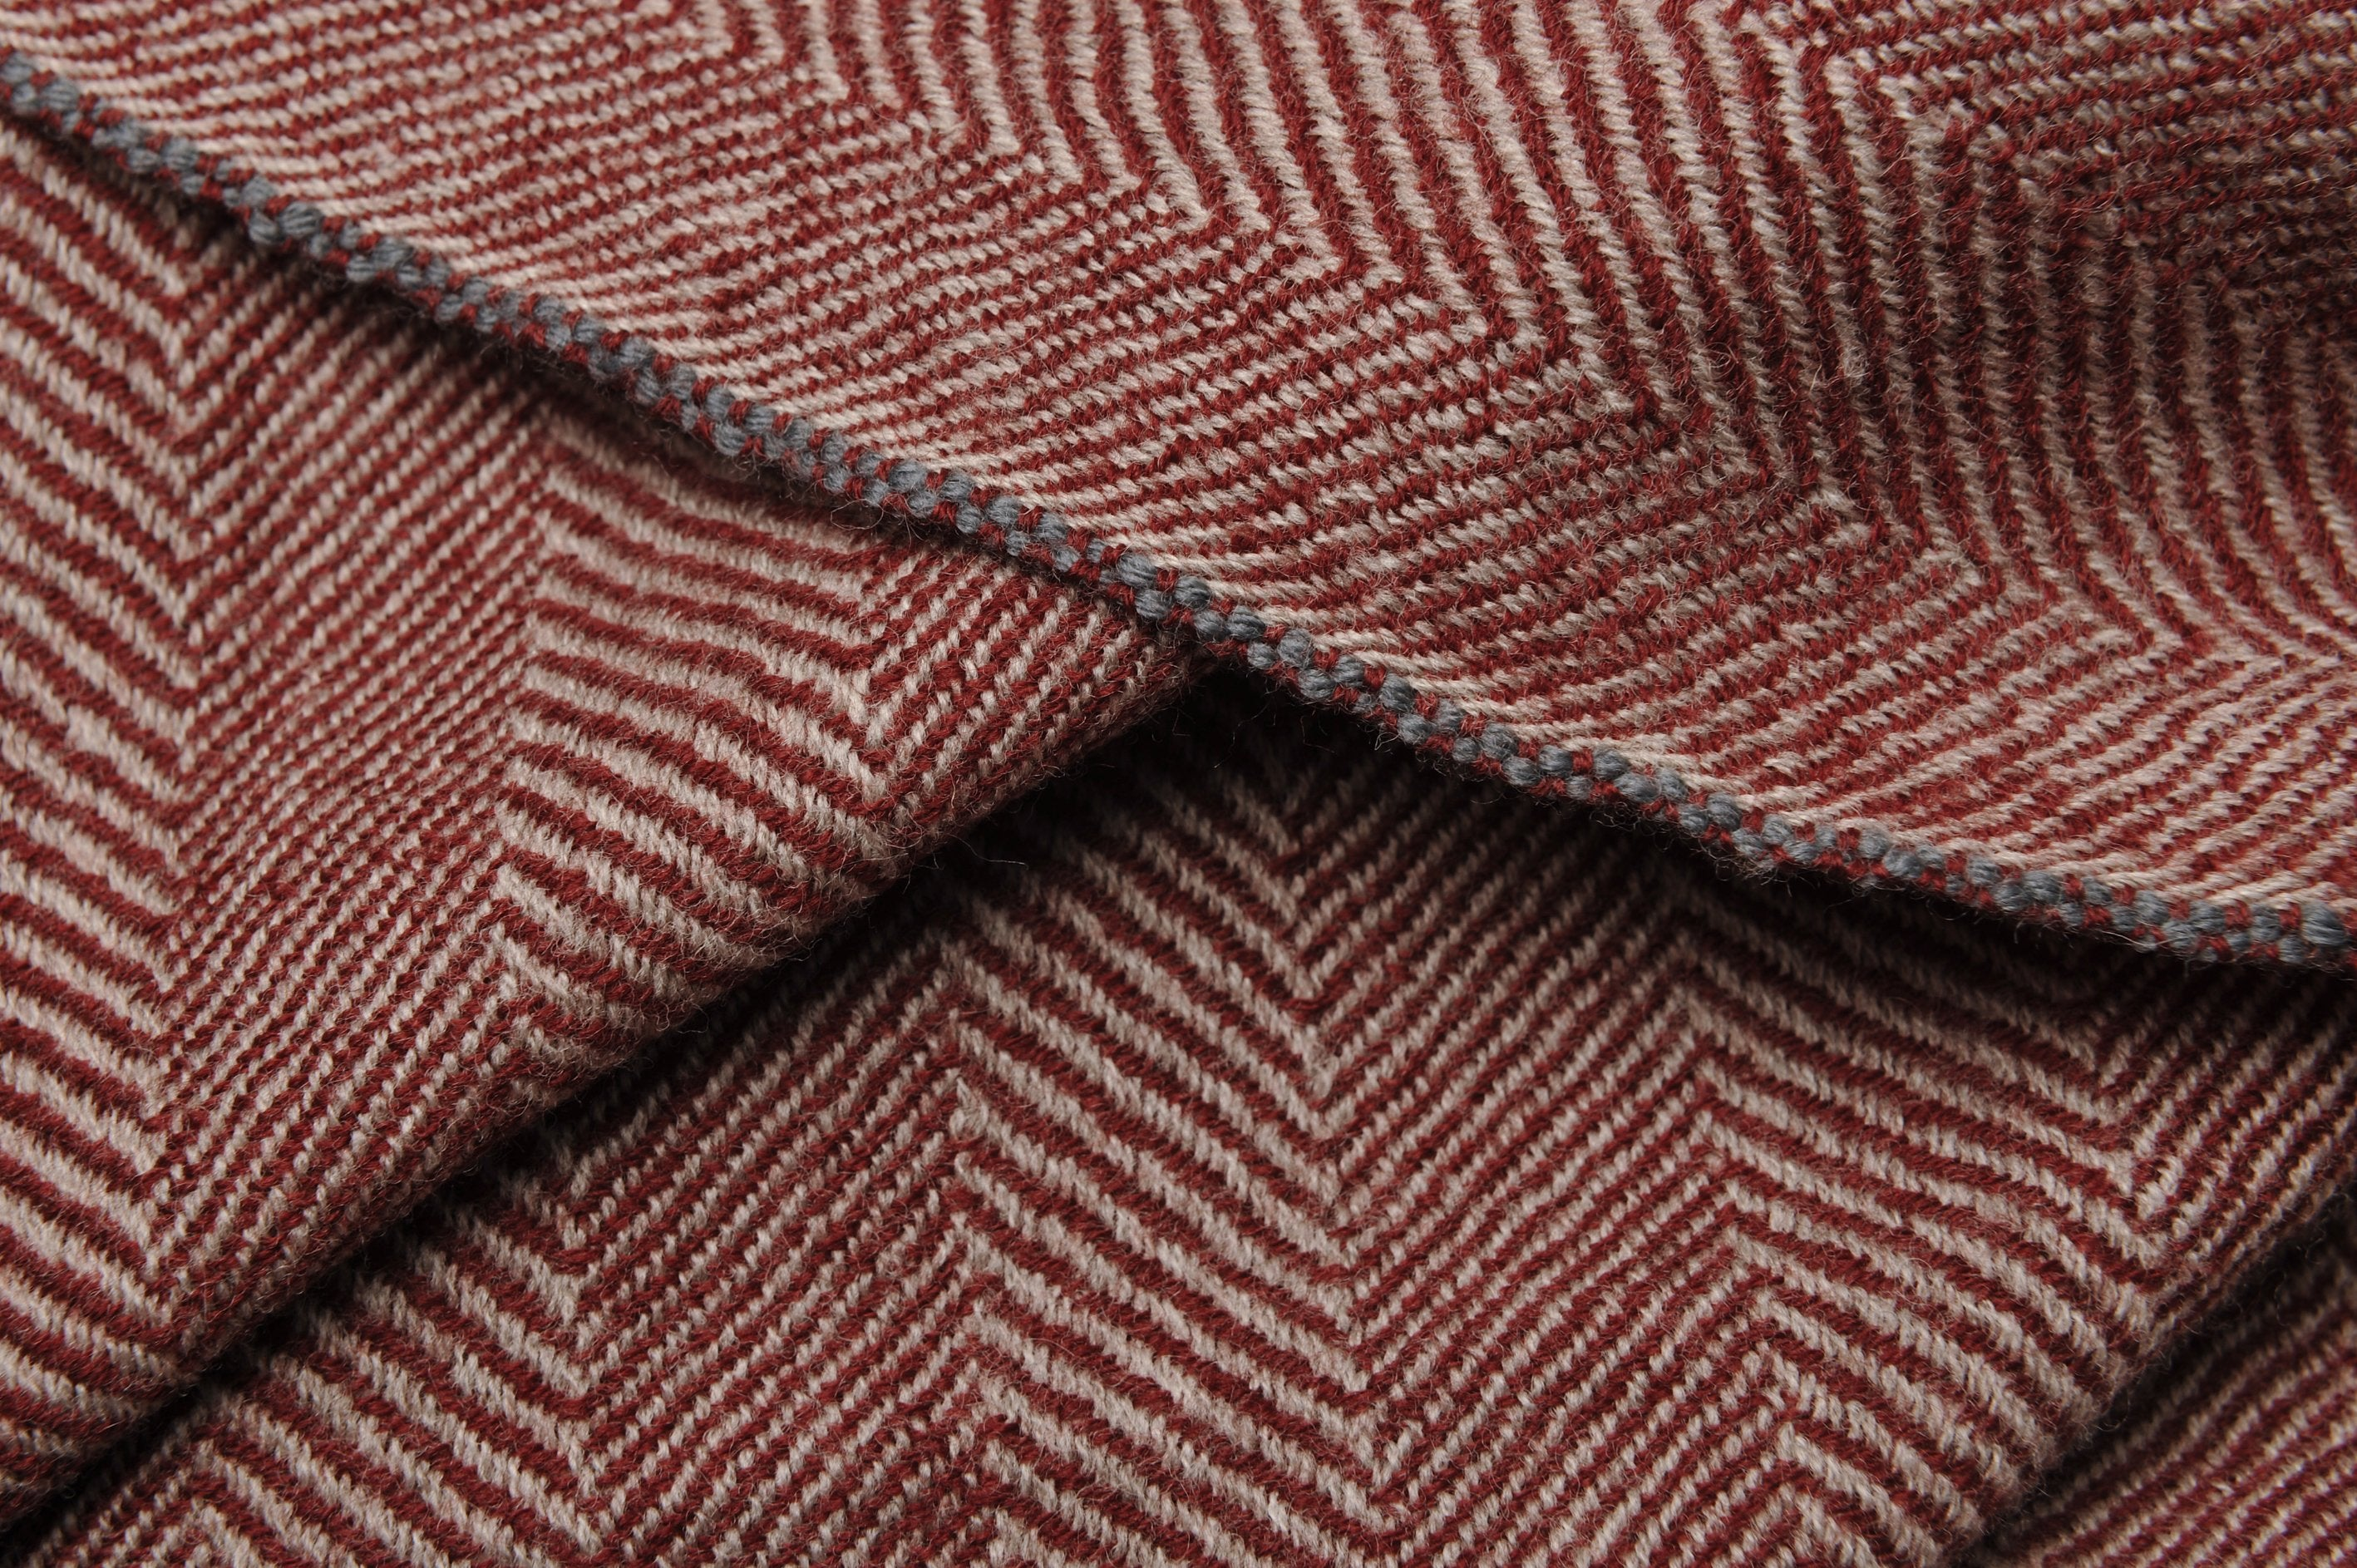 Echarpe - Plaid En Laine Bordeaux - Design 43 BURGUNDY